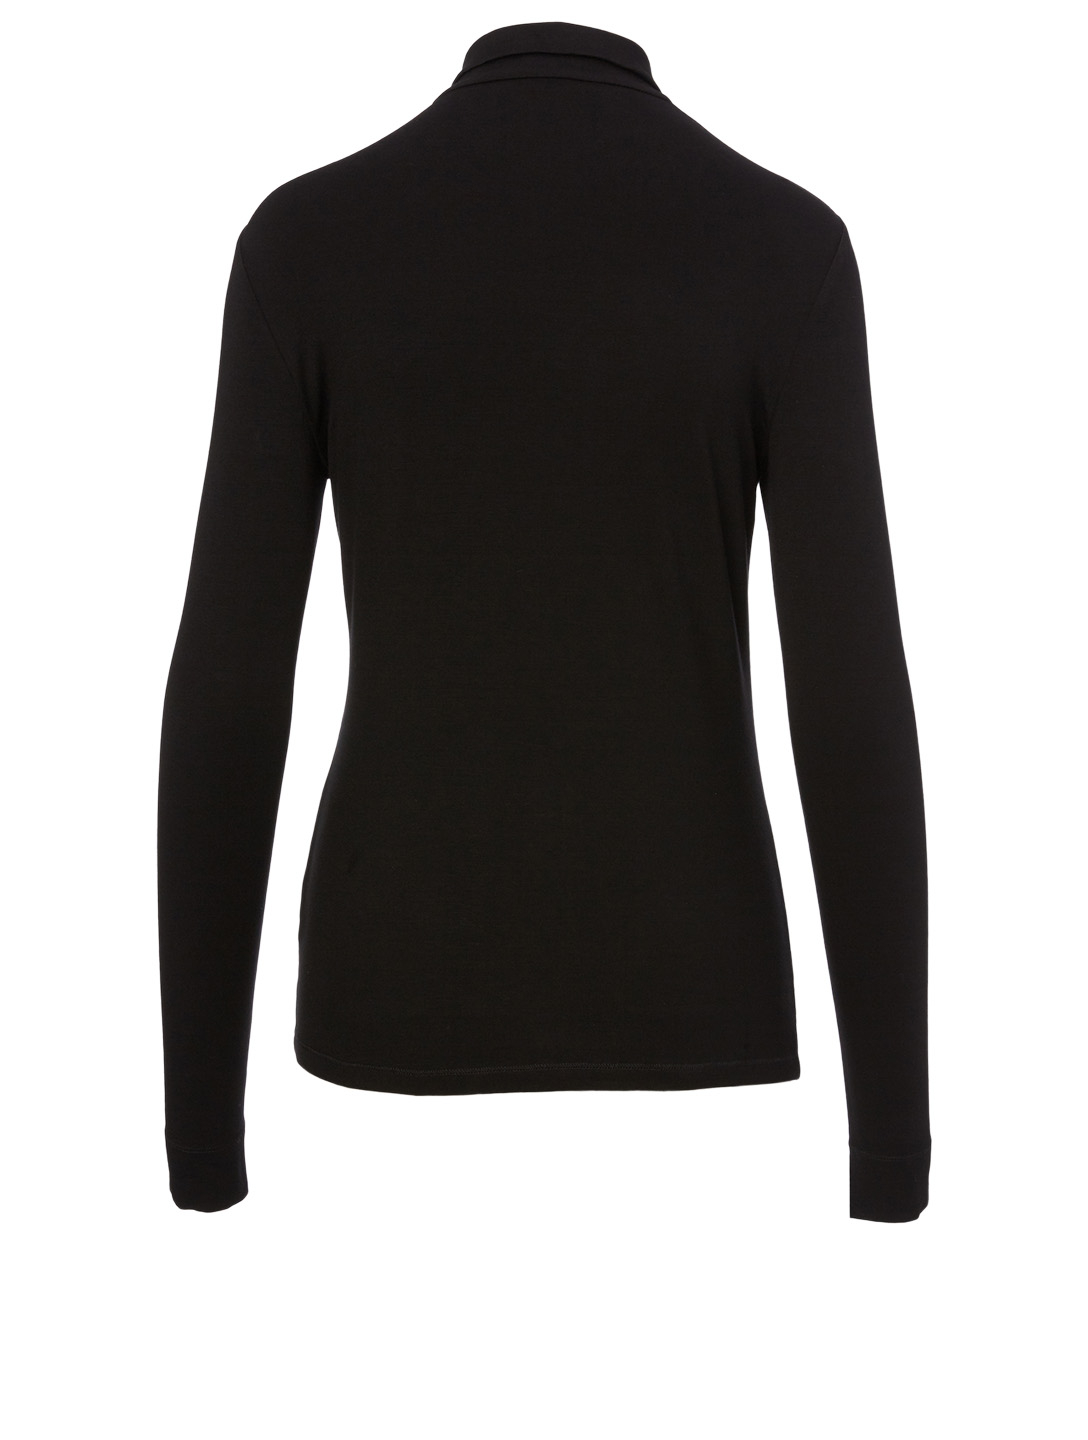 LAFAYETTE 148 NEW YORK Lane Zip Top Women's Black